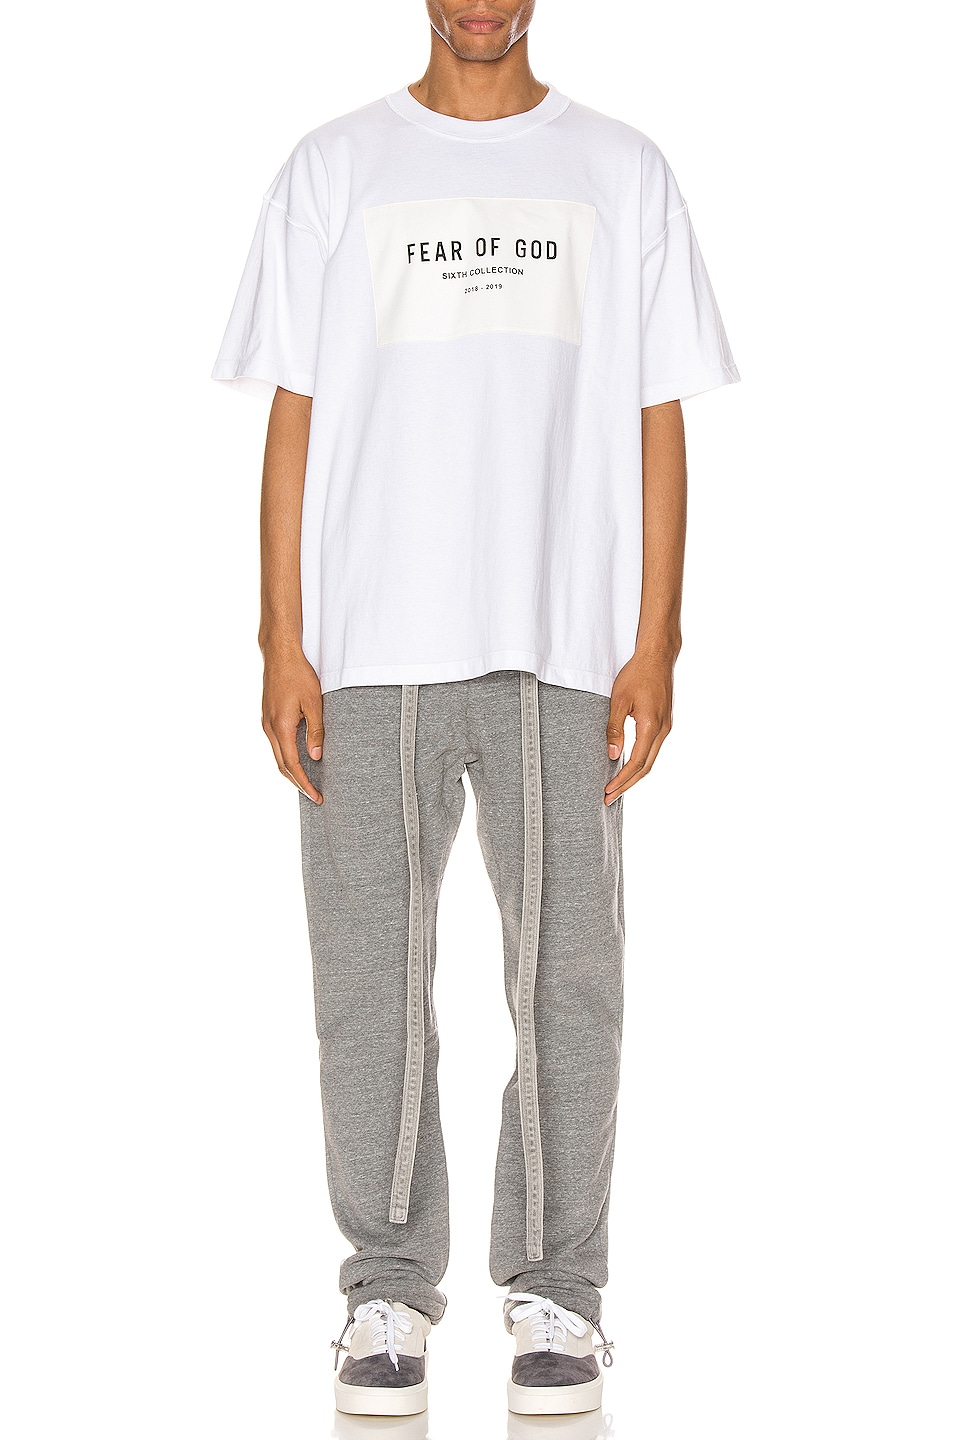 Image 4 of Fear of God 6th Collection Tee in White